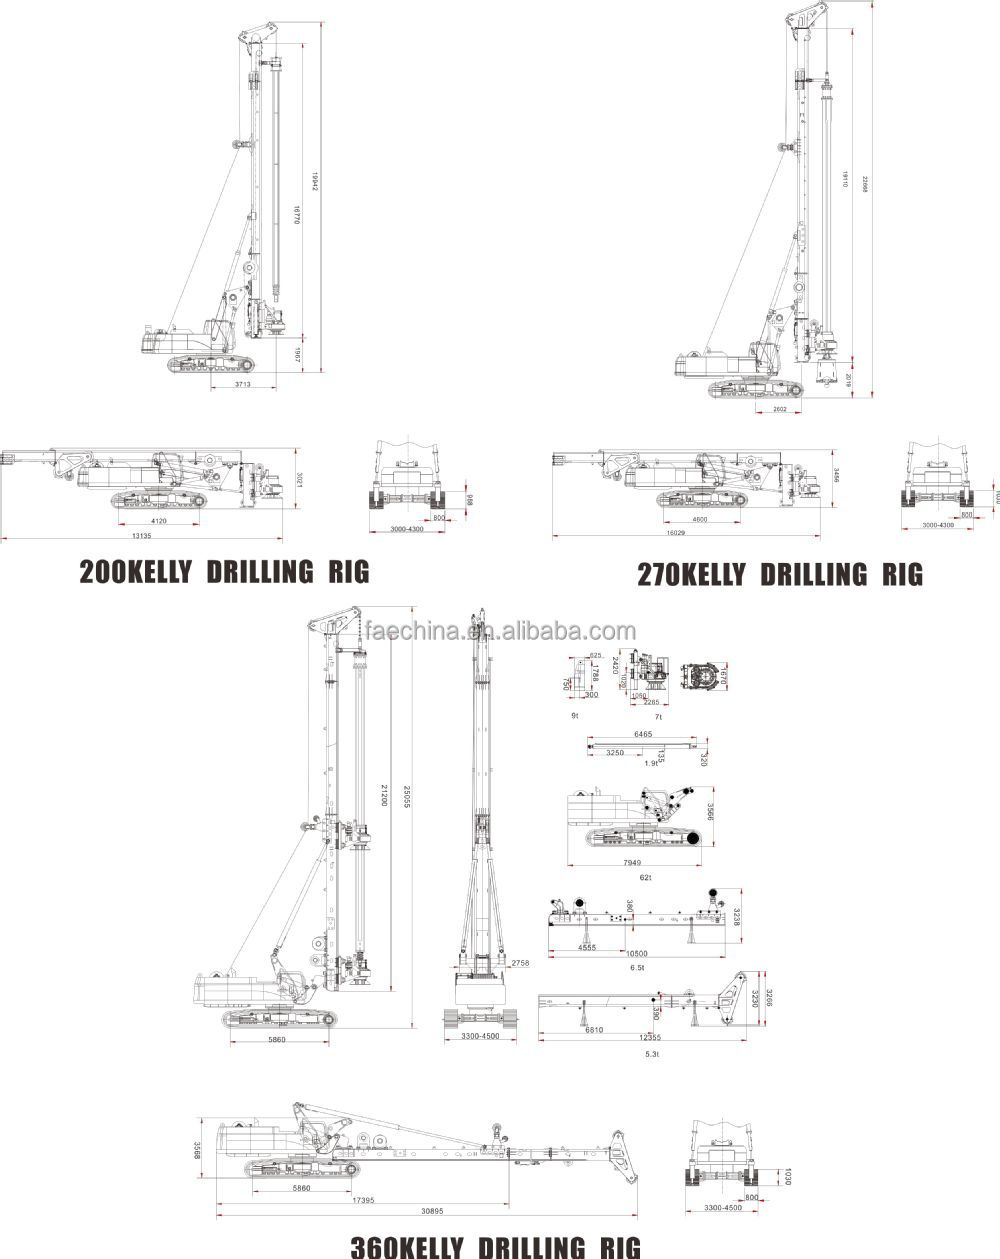 US20030110749 together with Kinematic Diagrams besides Free Open Source Schematic Flowchart Design Software Visio Alternative additionally US4202175 besides Pneumatics. on hydraulic circuit drawing